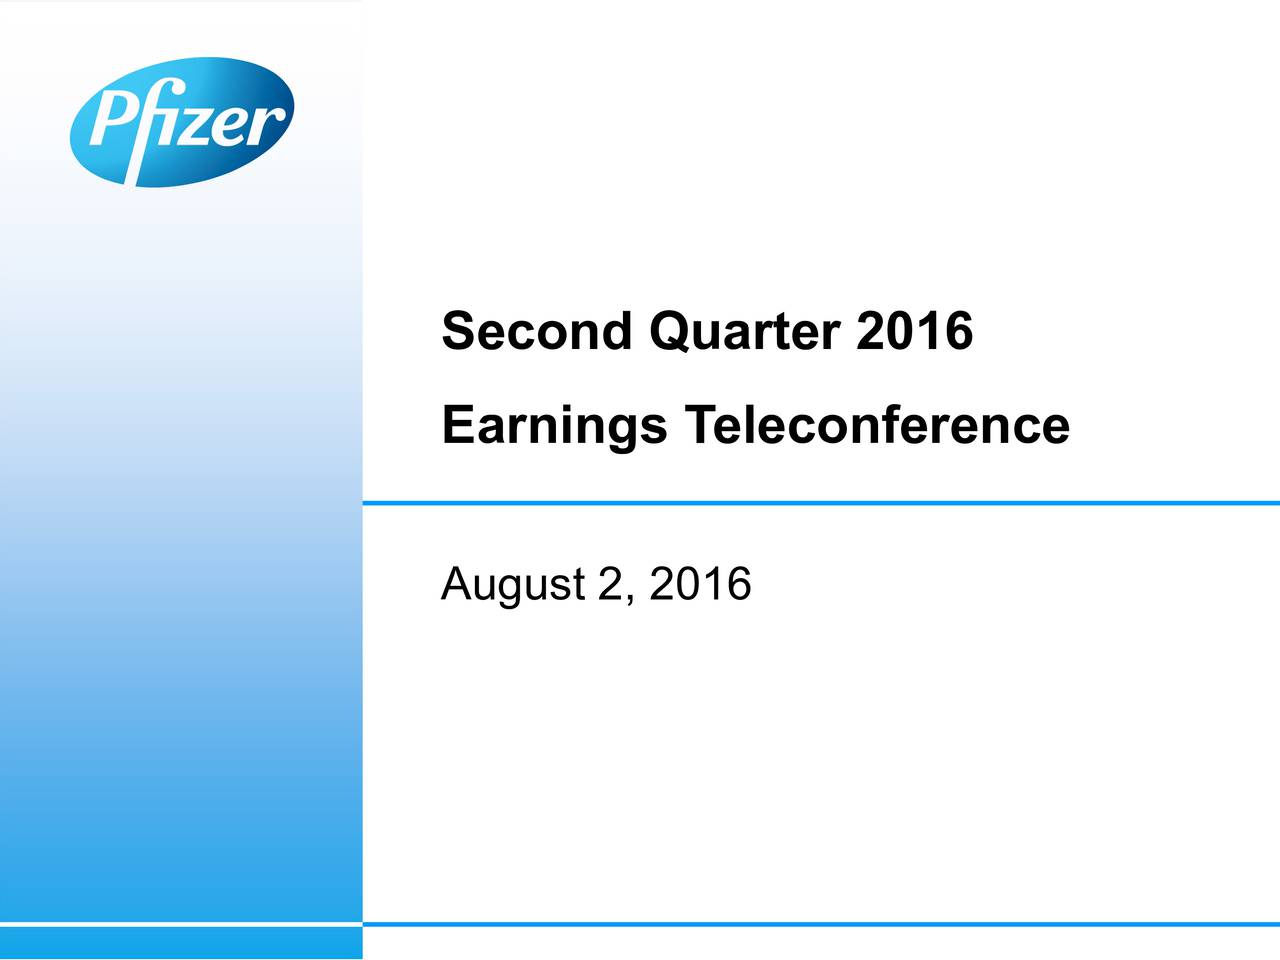 Earnings Teleconference August 2, 2016